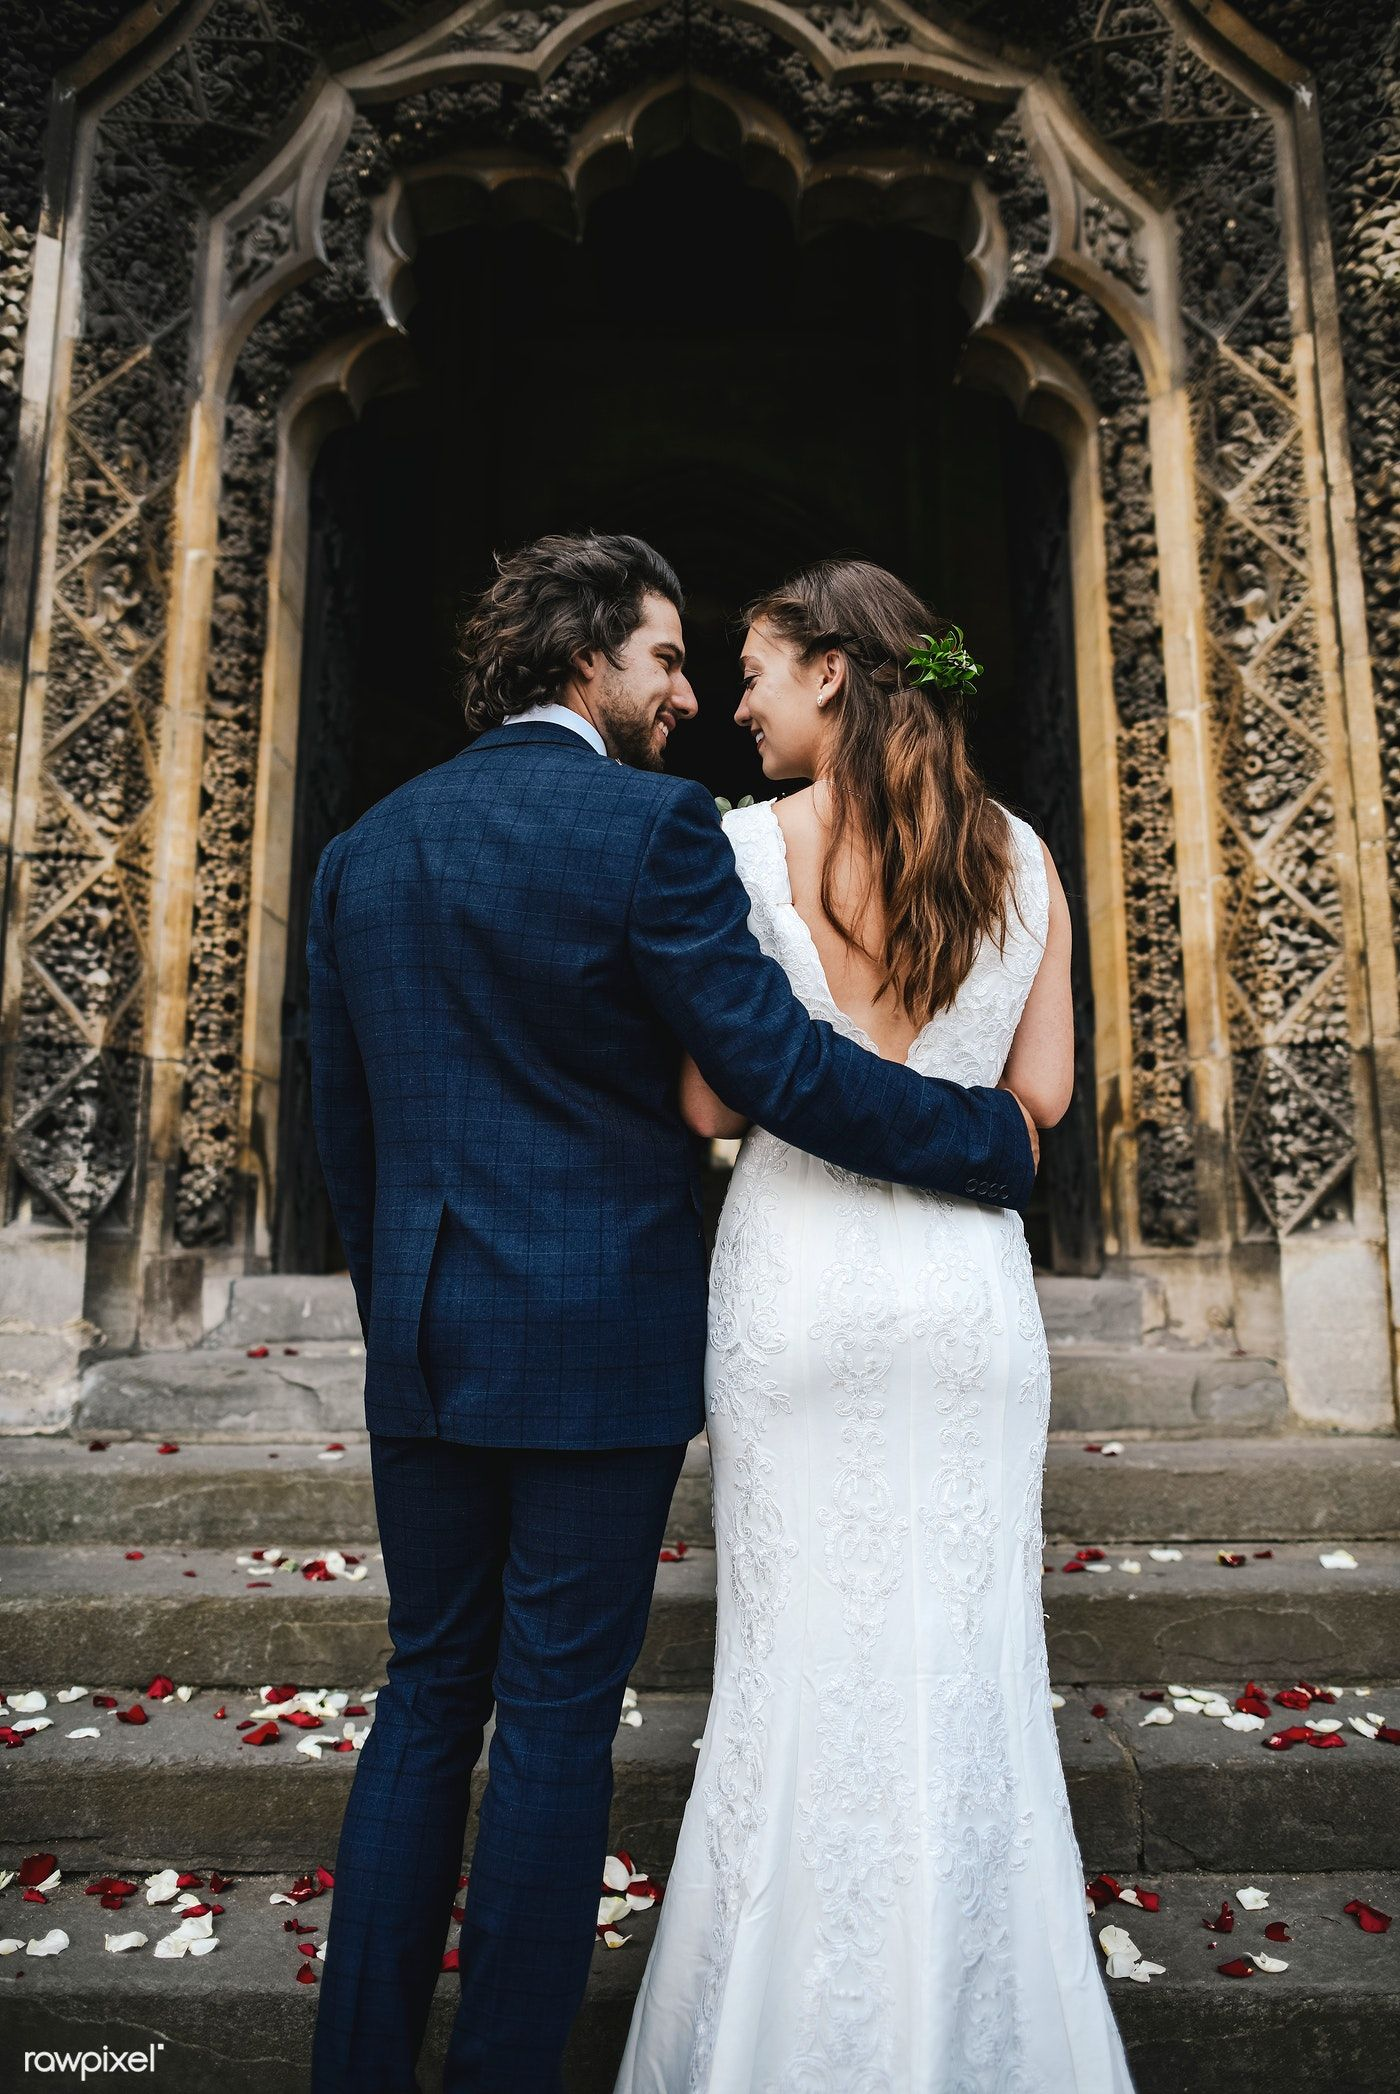 Download Premium Image Of Newly Wed Couple On The Church Steps 526747 Newlyweds Wedding Wedding Styles